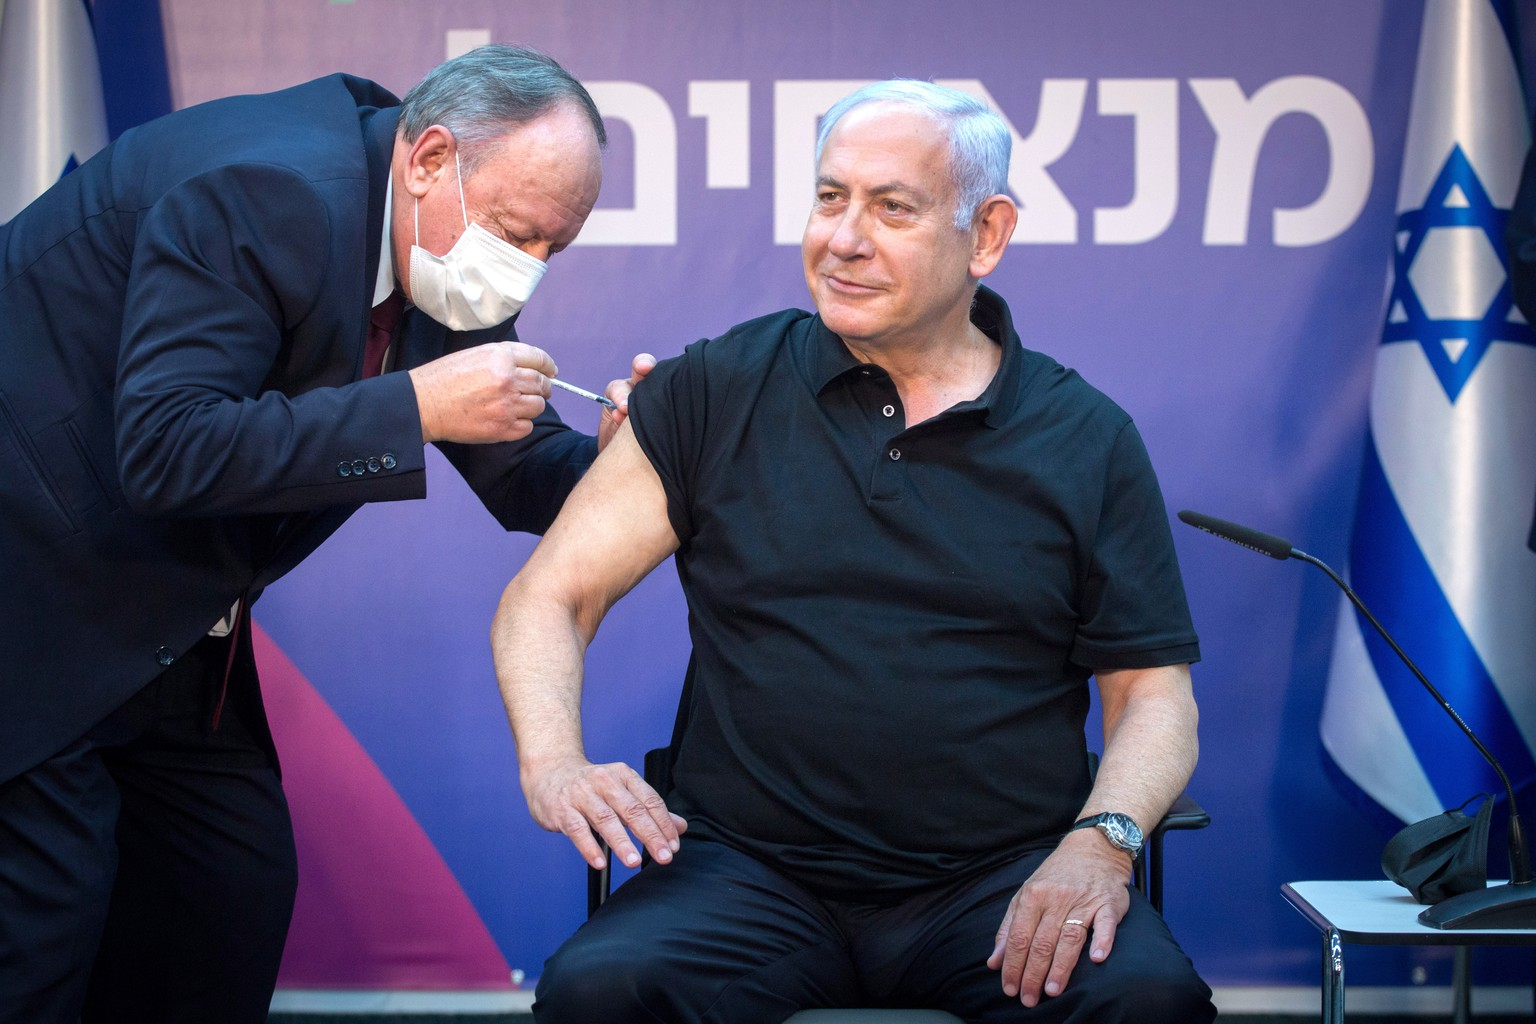 epa08929176 Israeli Prime Minister Minister Benjamin Netanyahu is administered the second jab of the Covid-19 vaccine, at Sheba Medical Center in Ramat Gan, Israel, 09 January 2021. Netanyahu received his first jab on 19 December 2020.  EPA/Miriam Elster/ POOL